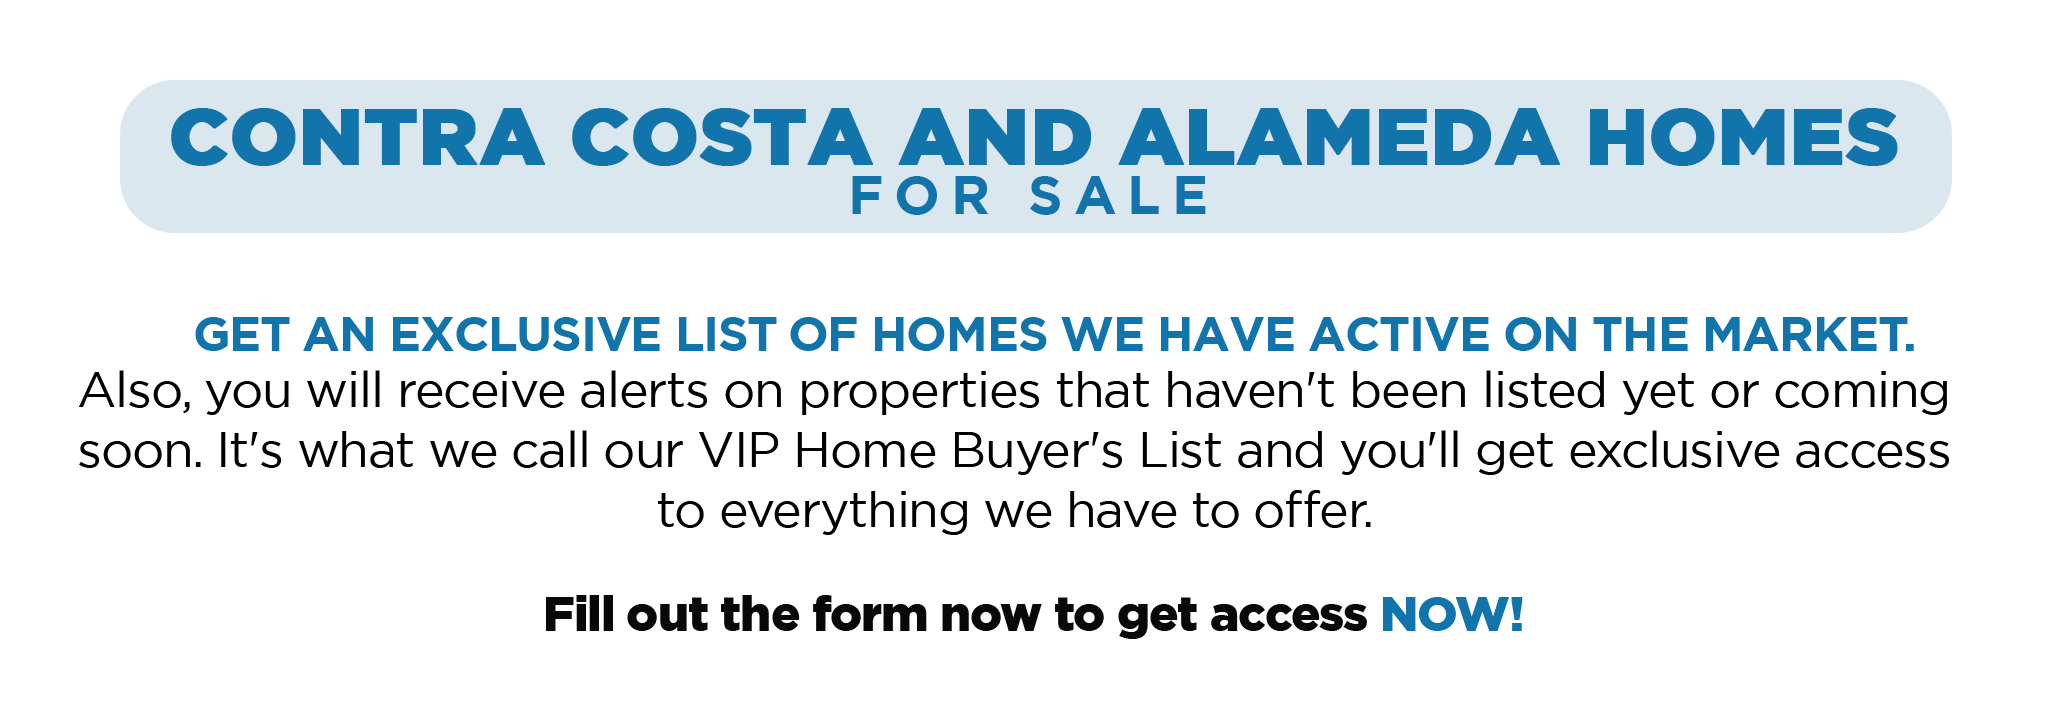 OUR HOMES FOR SALE TEASER TEXT.png